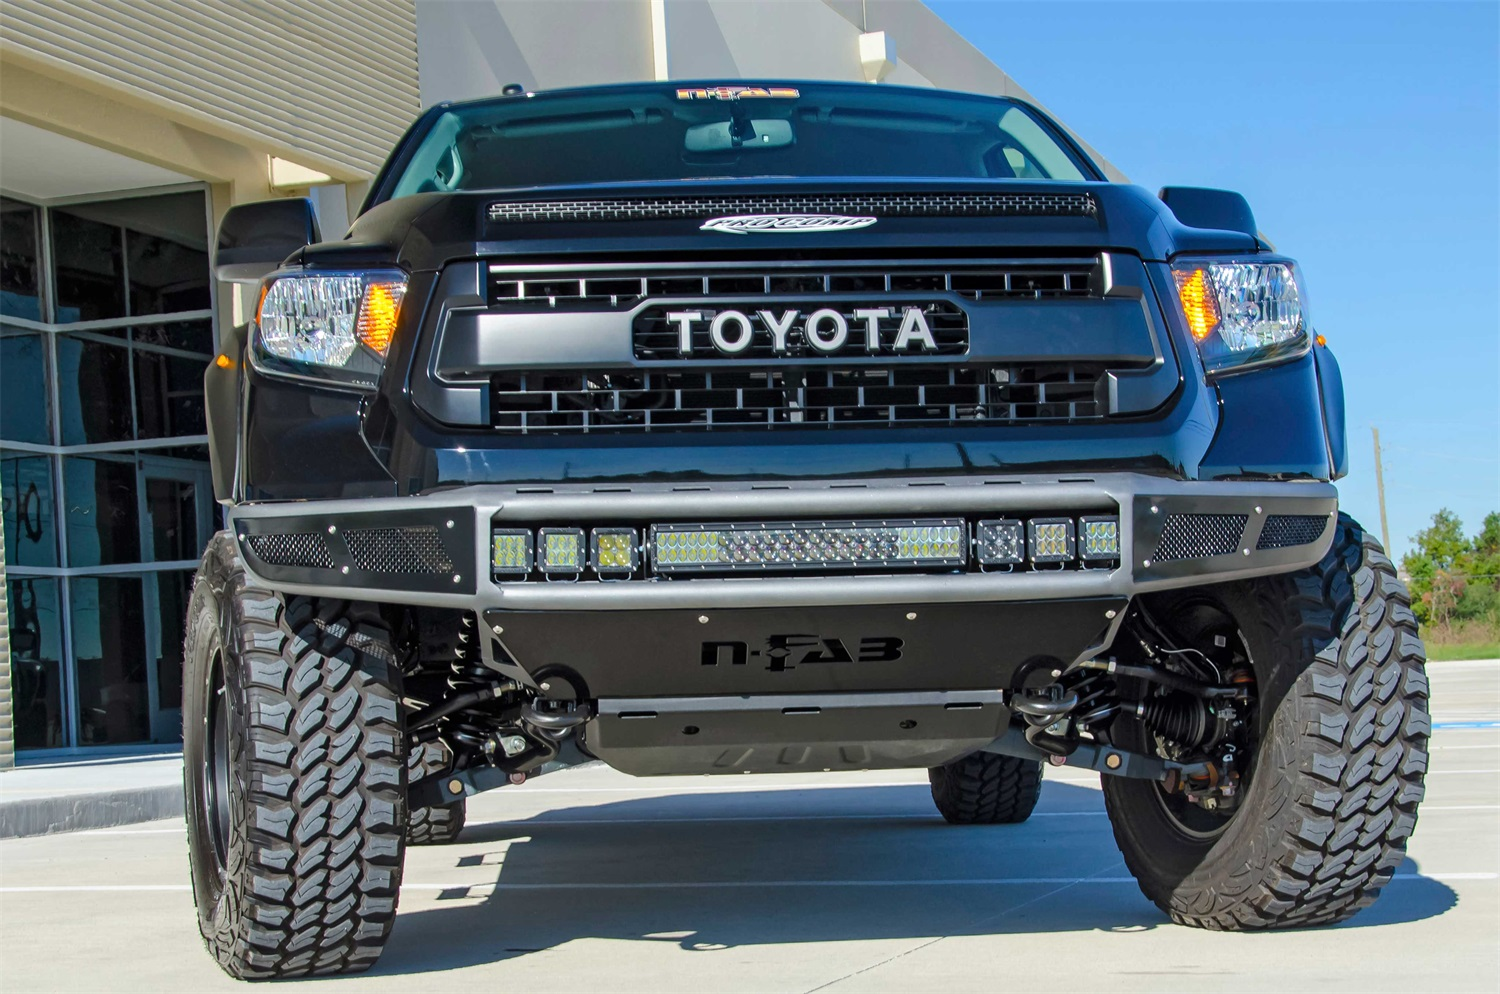 N-Fab 2014-2019 Toyota Tundra M-RDS Radius Pre-Runner Front Bumper W/ Multi-Mount - TEXTURED BLACK